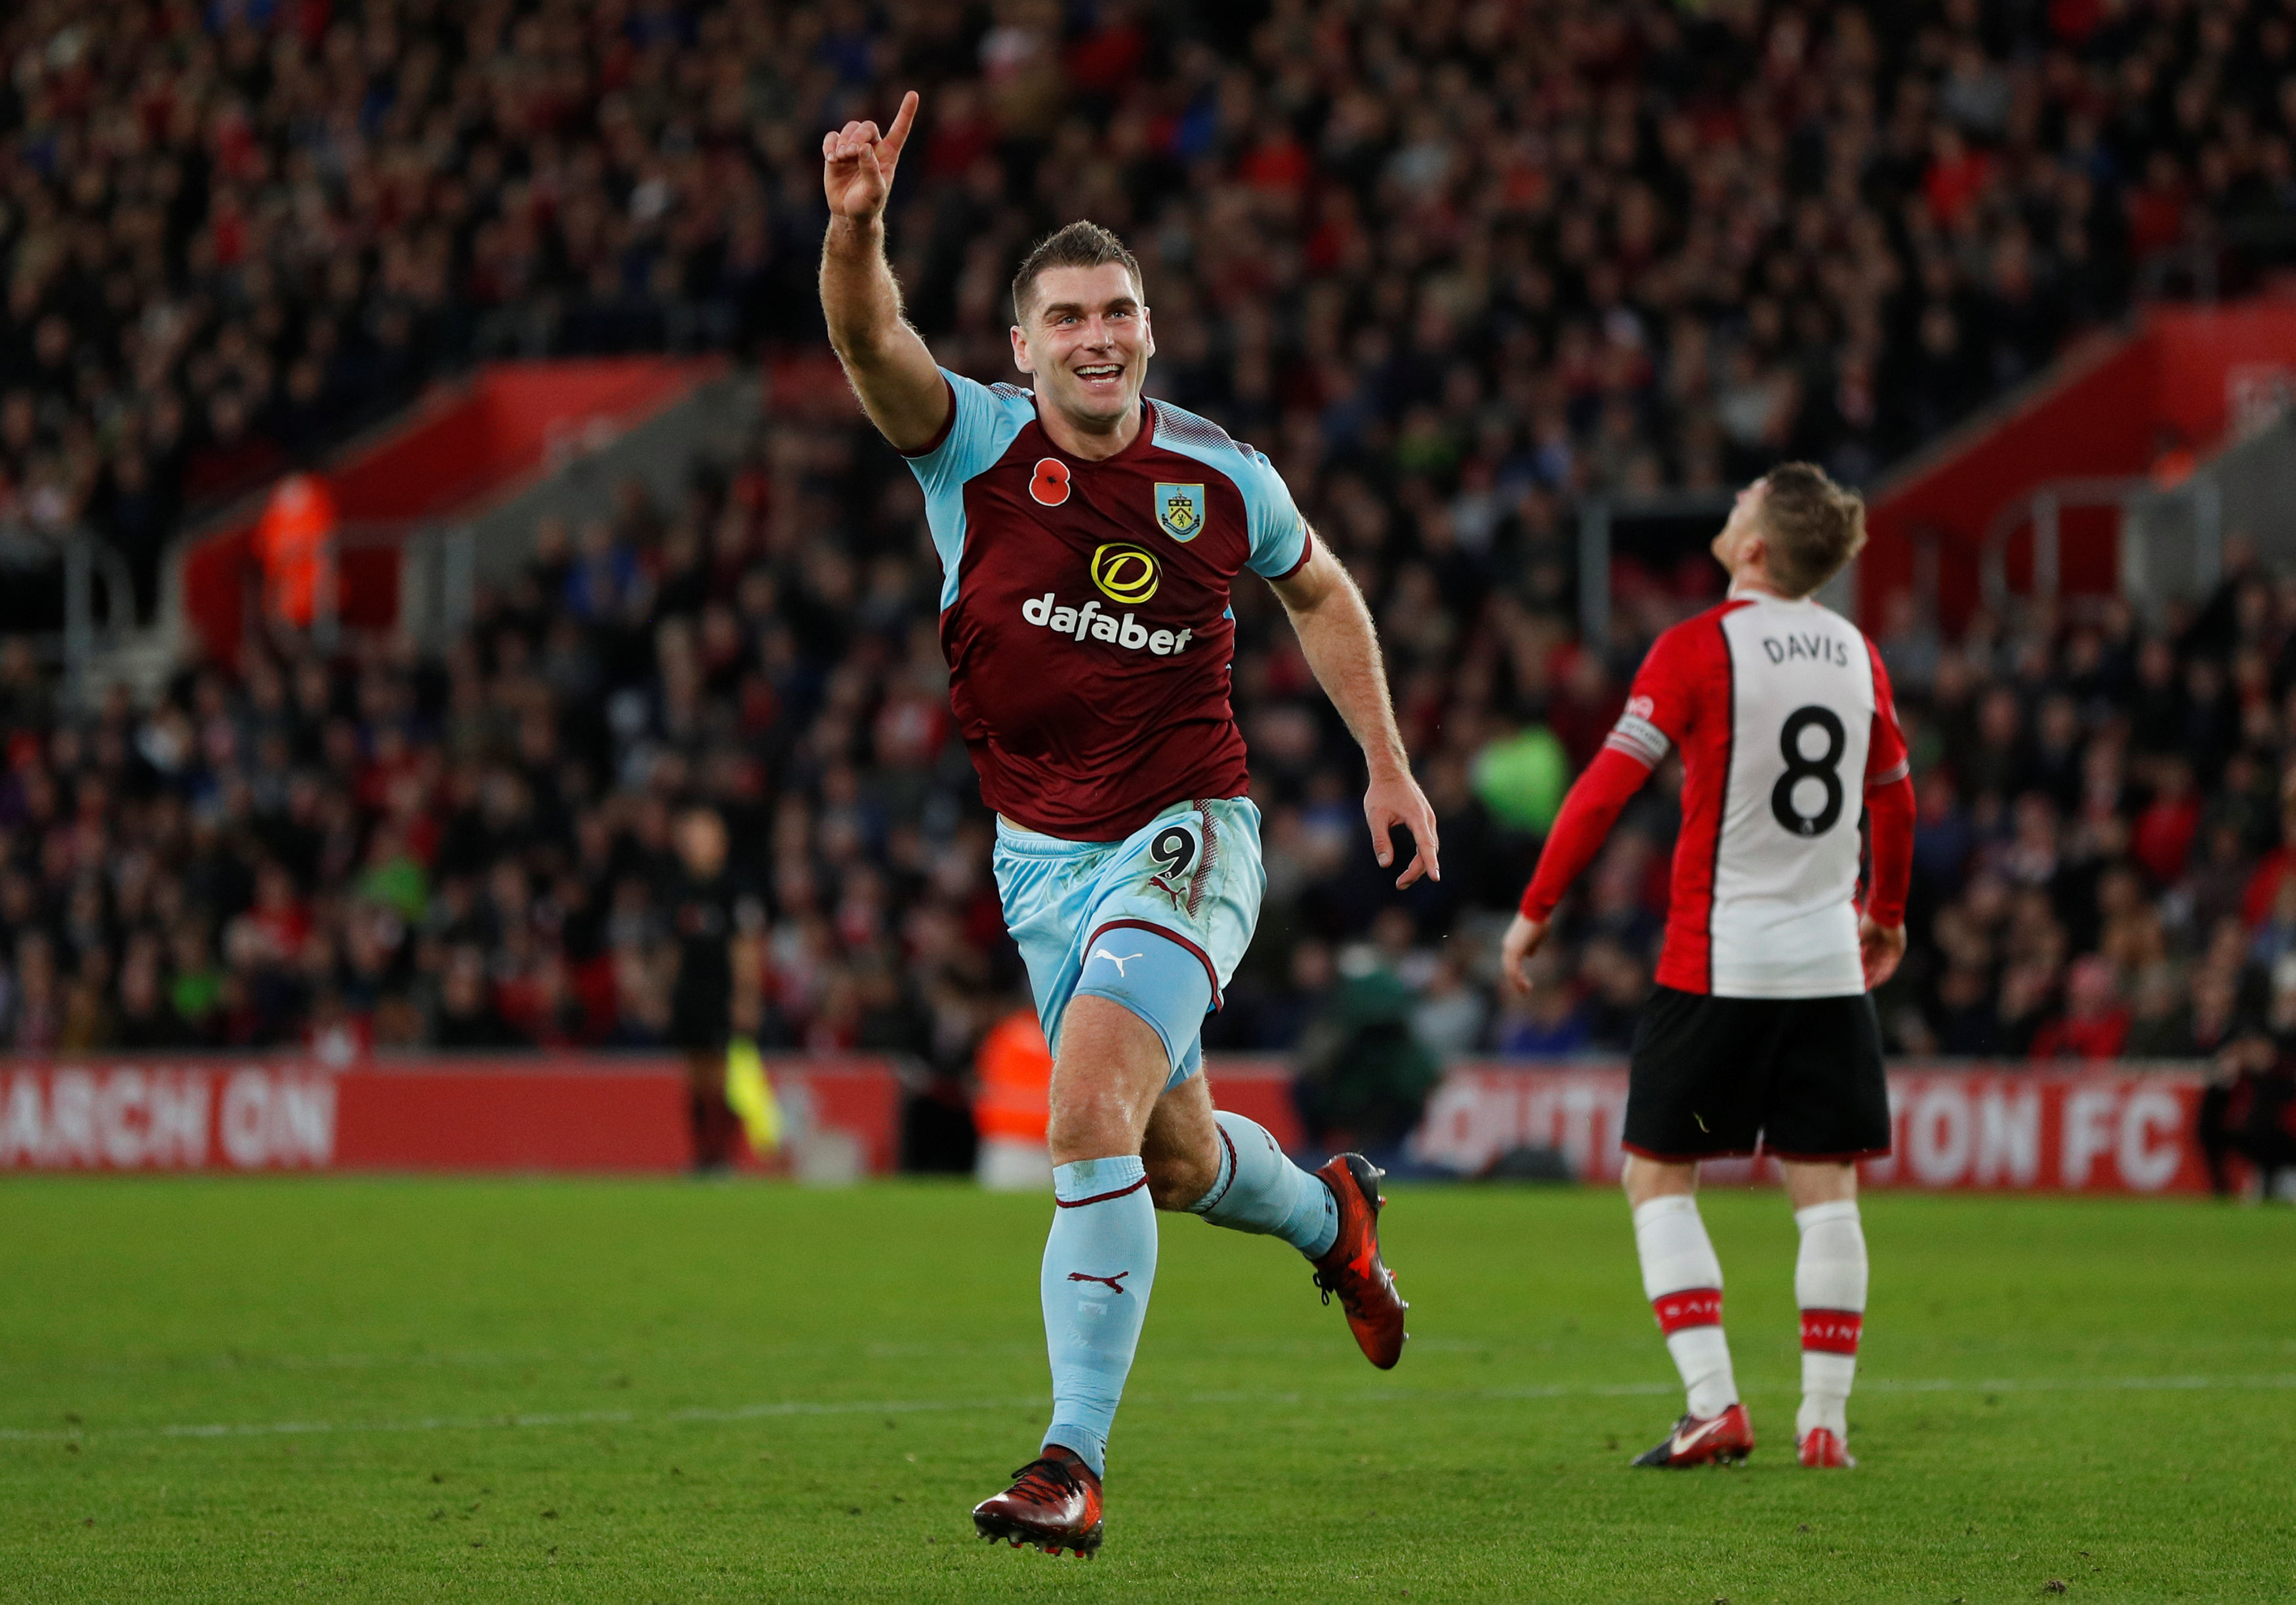 Football: Burnley's impressive start continues with win at Southampton